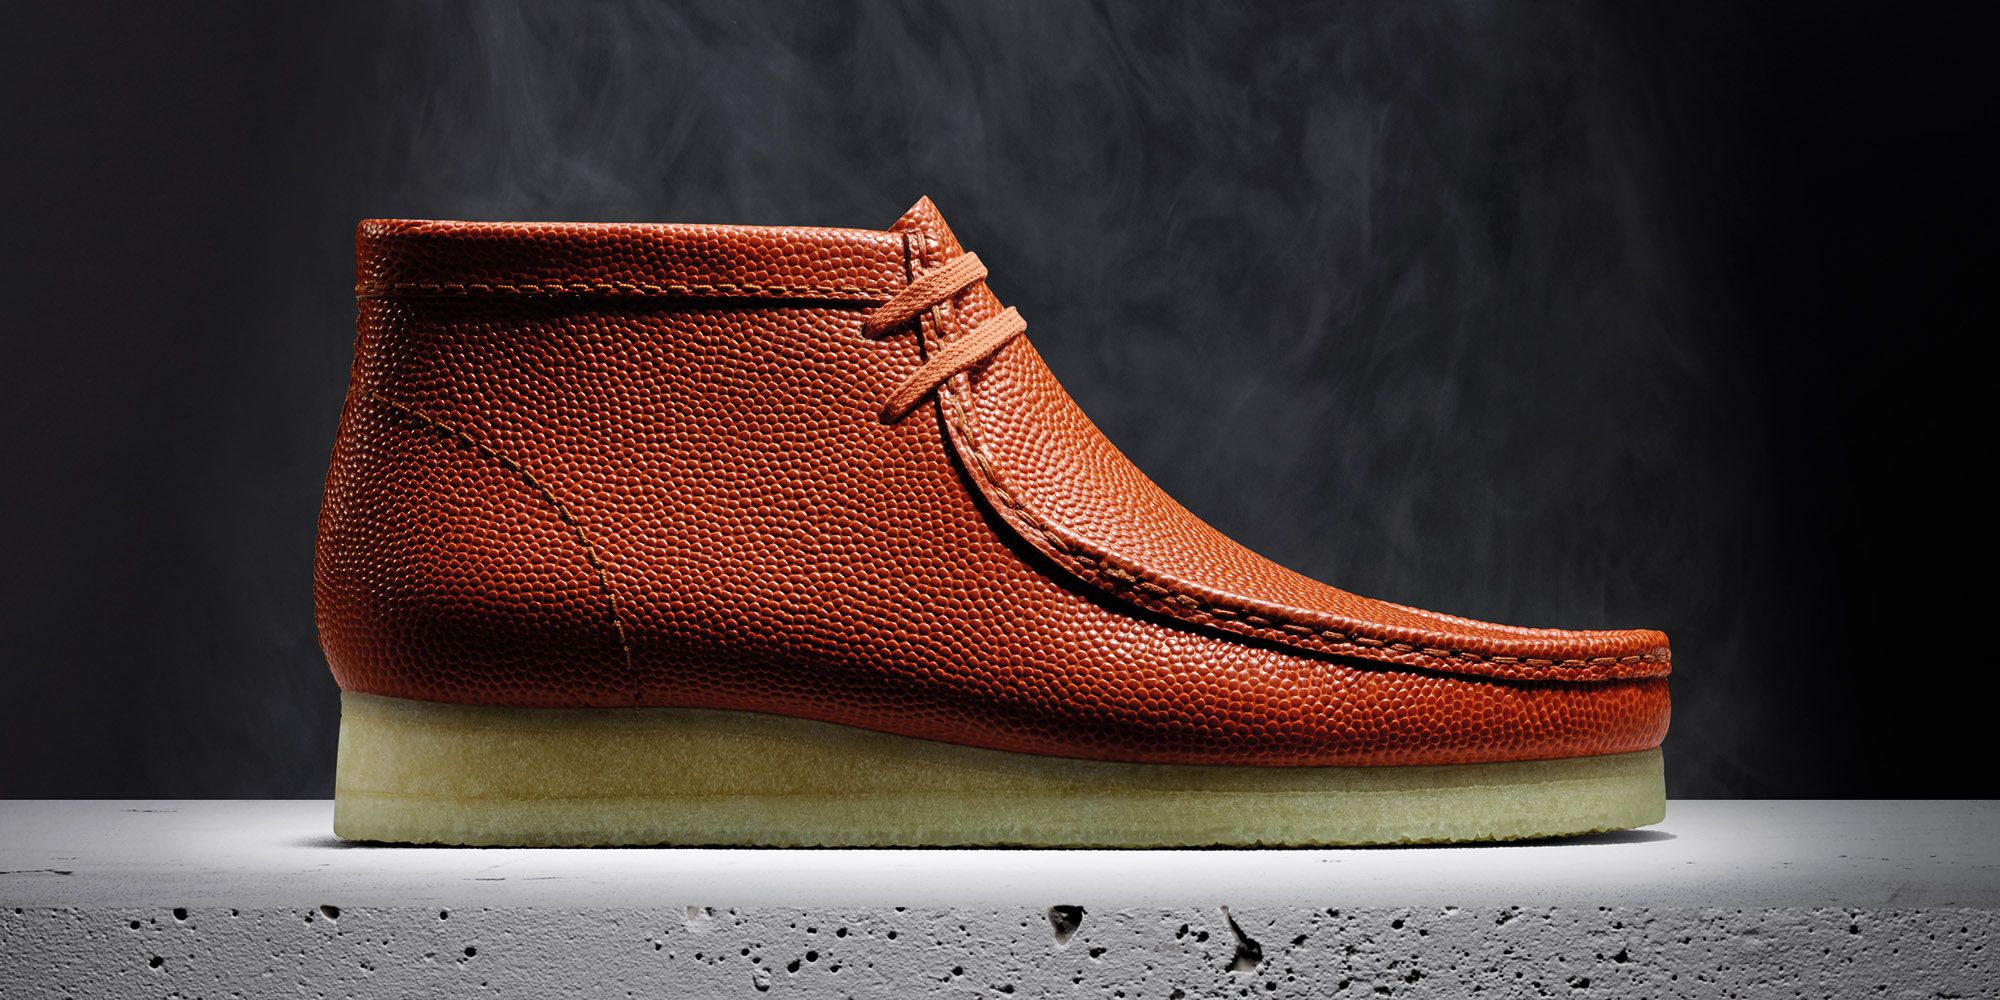 Hospitalidad sirena Artesano  Clarks Horween Leather Wallabees - Clarks Launches New Wallabees For Fall